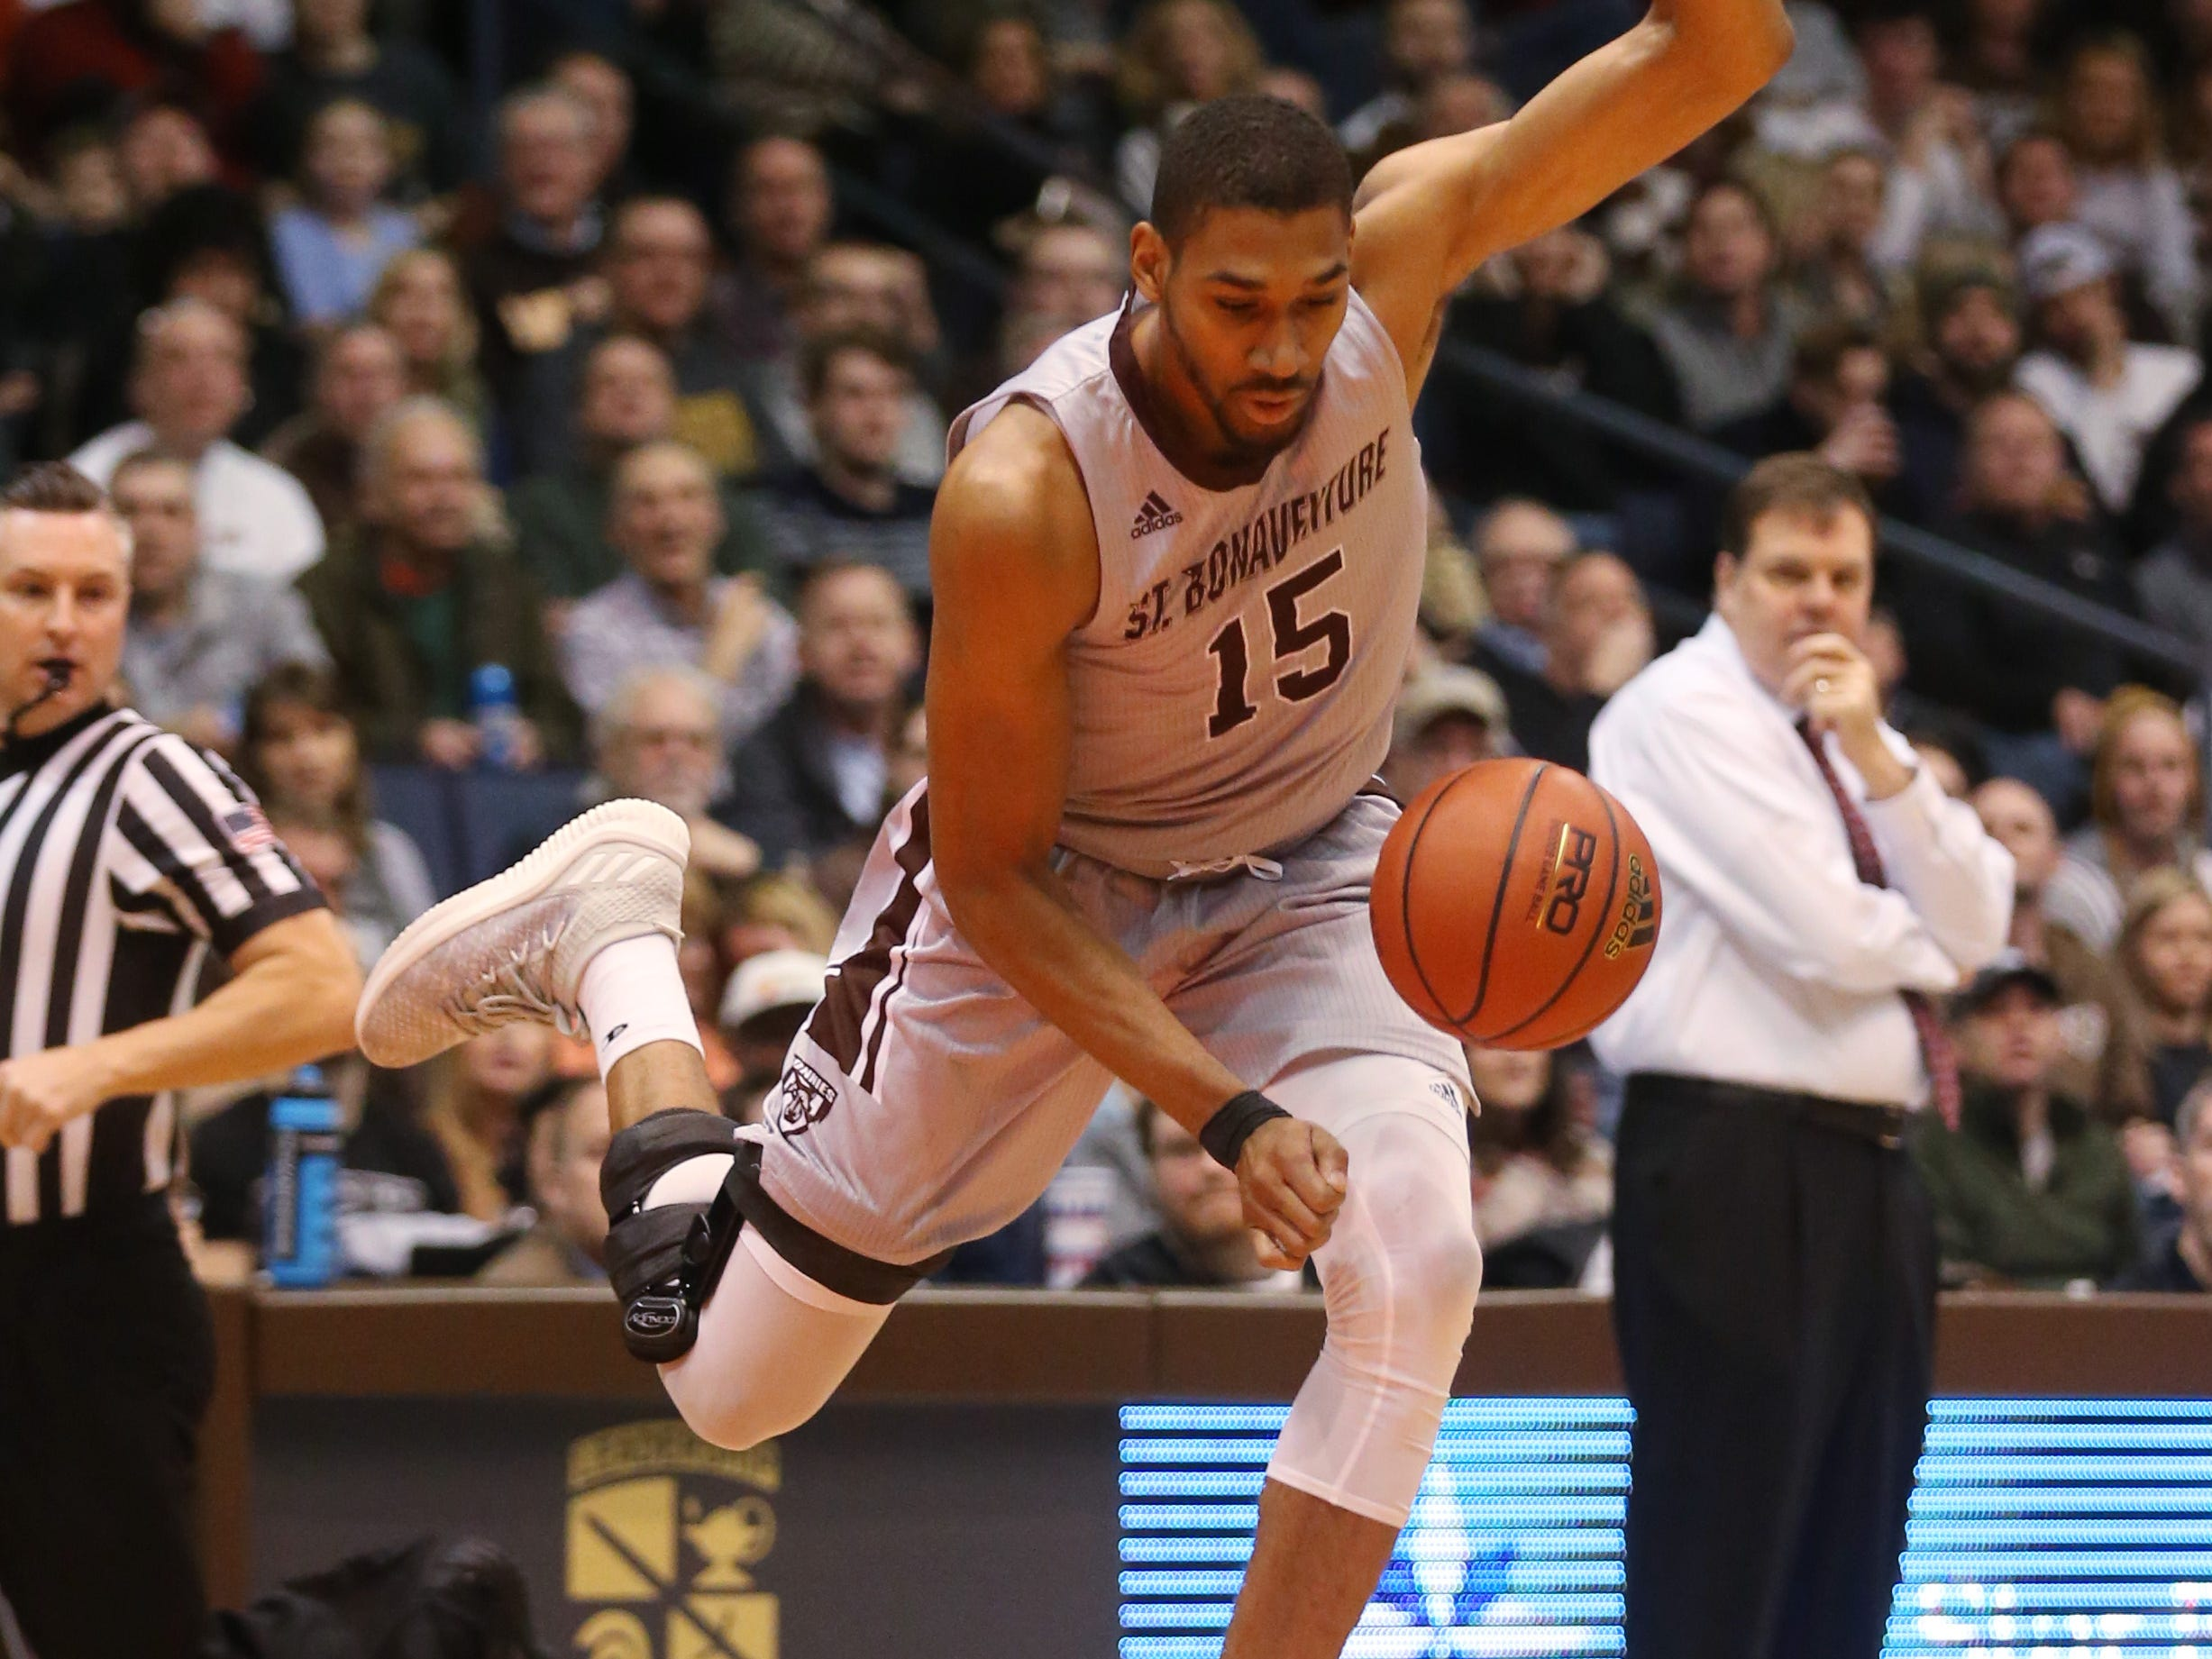 St. Bonaventure's LaDarien Griffin leaps over Fordham's diving Nick Honor as he steals the ball during the first half.